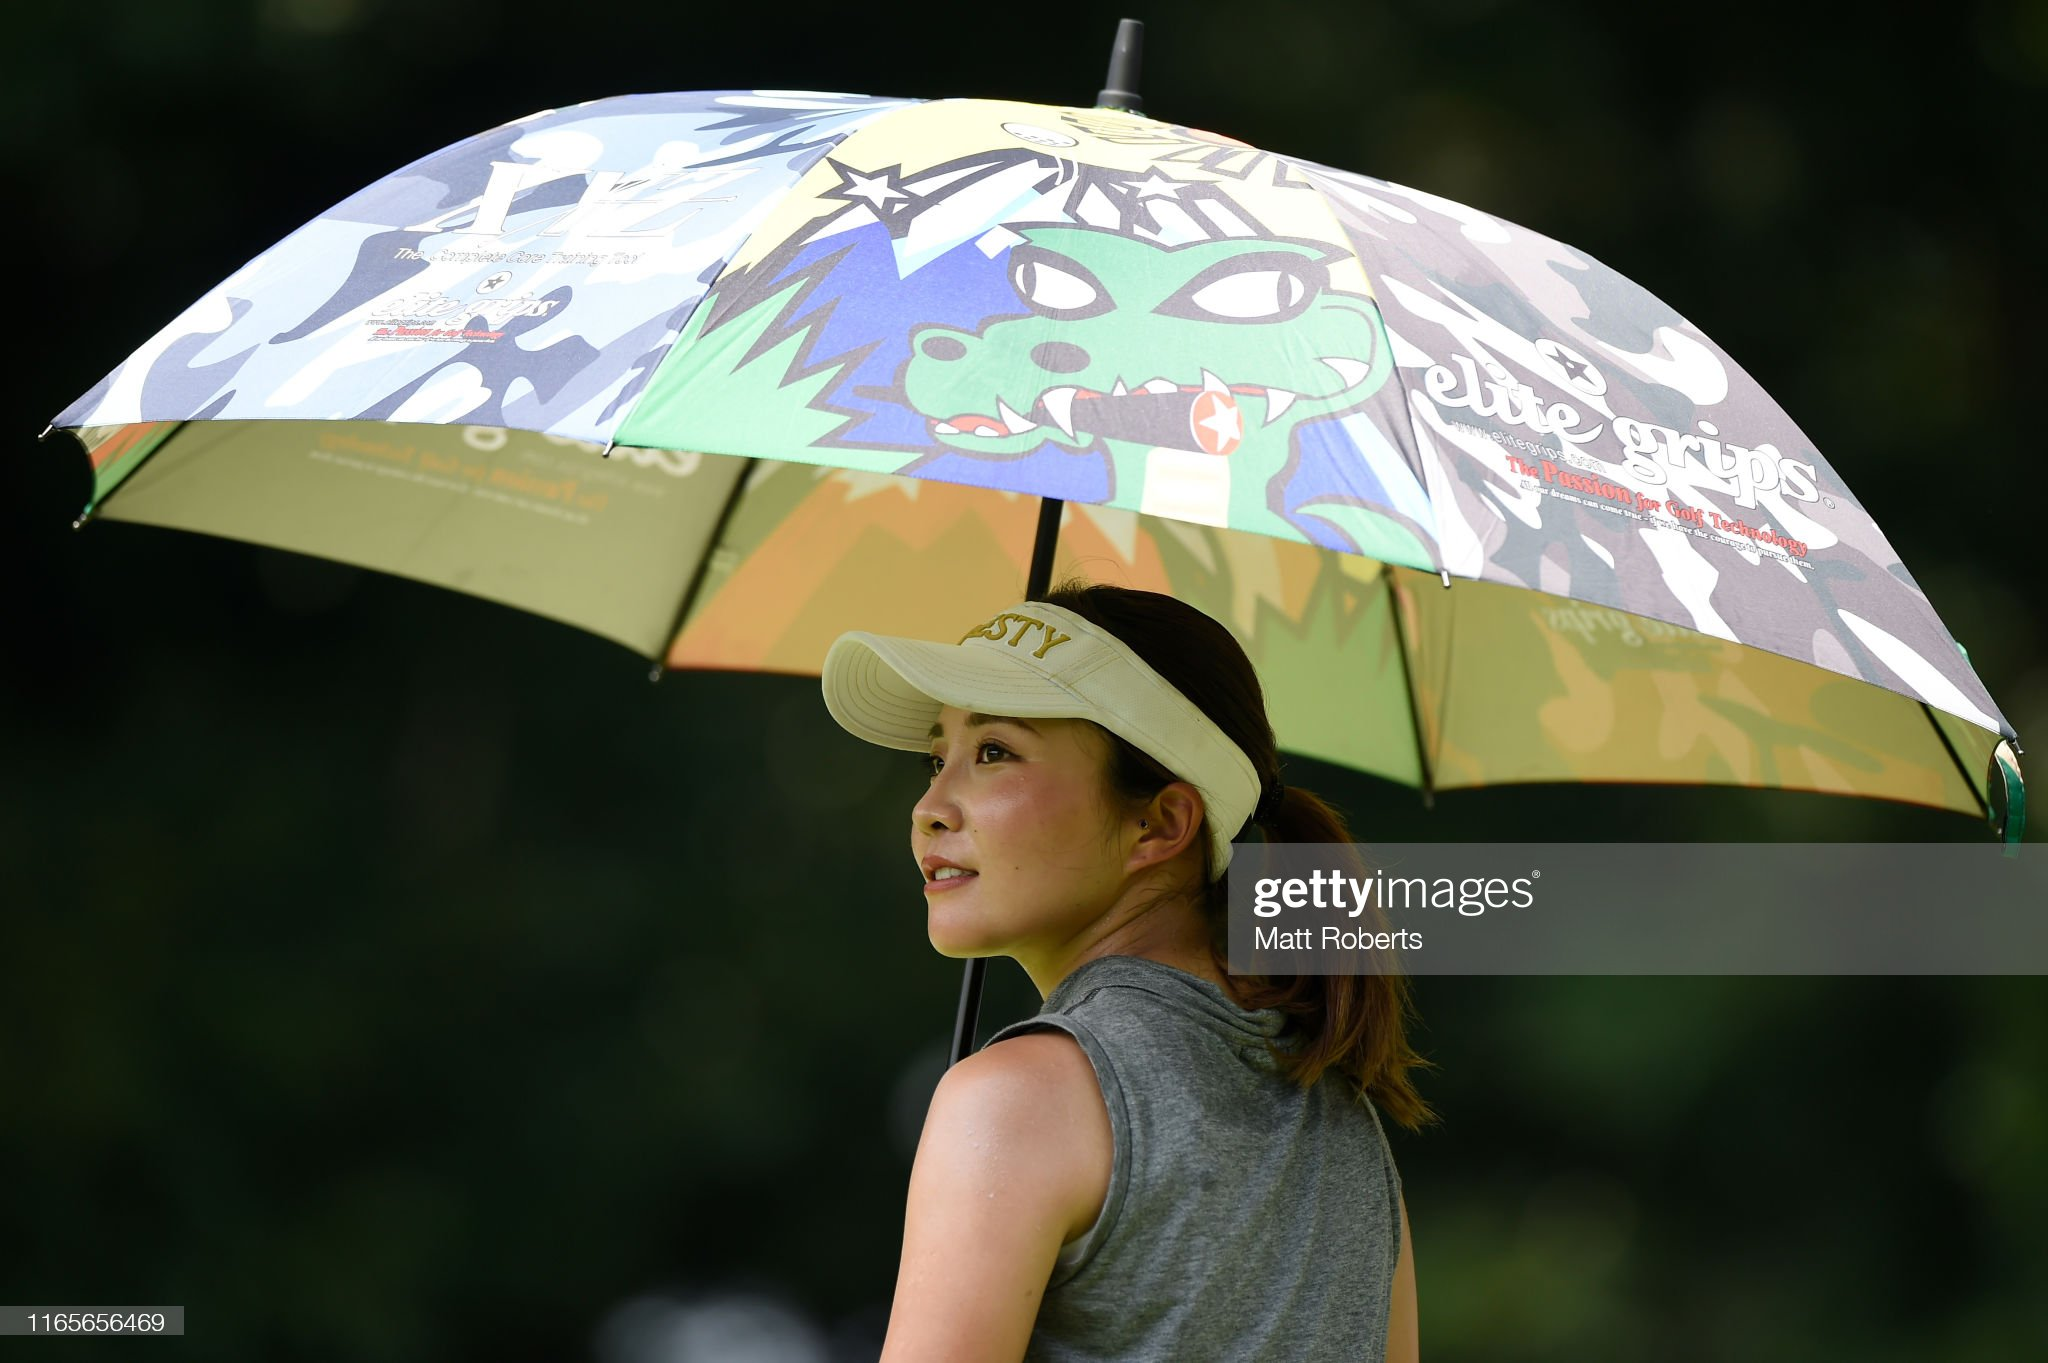 https://media.gettyimages.com/photos/riko-inoue-of-japan-looks-on-during-the-final-round-of-the-castol-at-picture-id1165656469?s=2048x2048